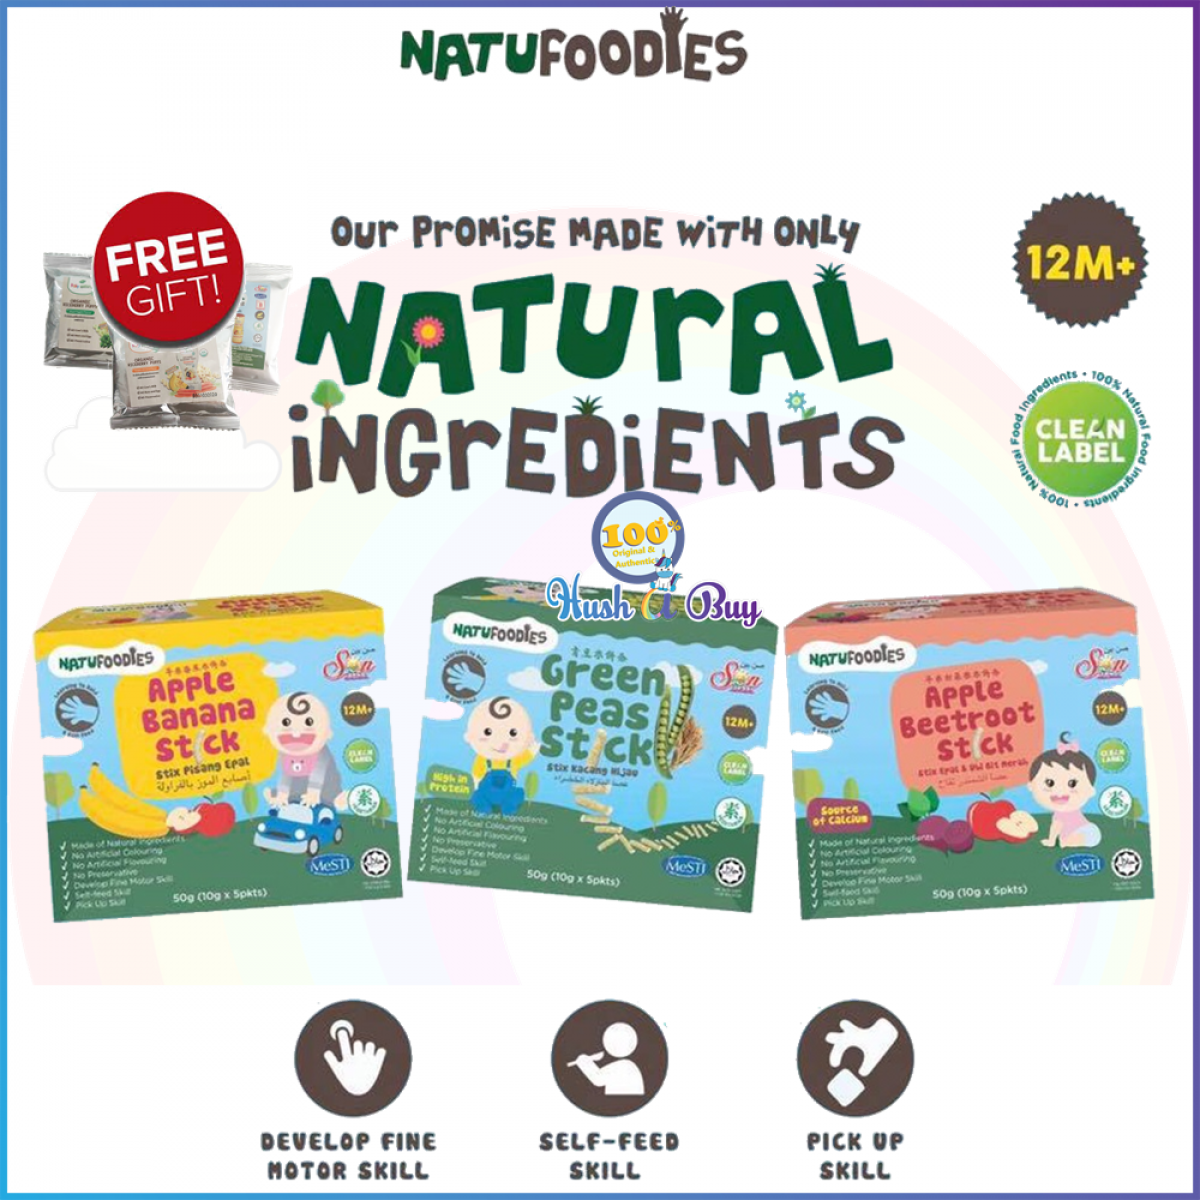 3 BOXES - Natufoodies Healthy Snacks Sticks - Halal - For 12m and above